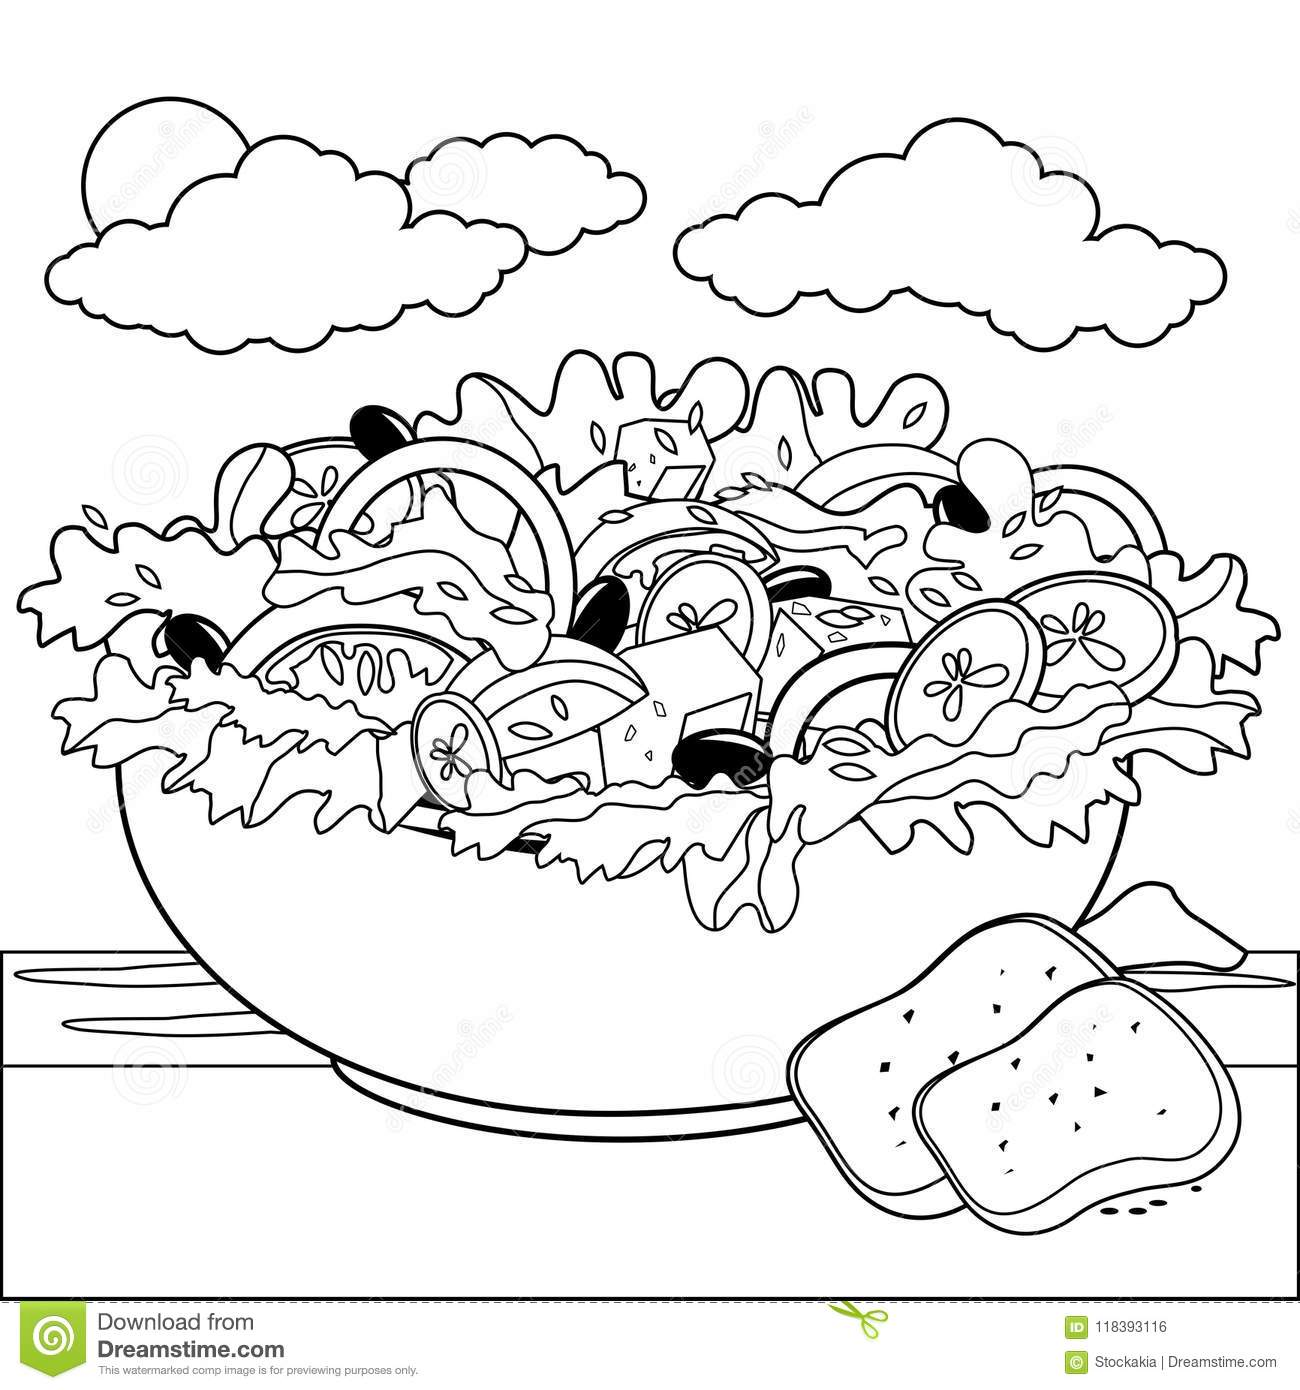 A delicious bowl of salad in a table next to the sea black and white coloring book page